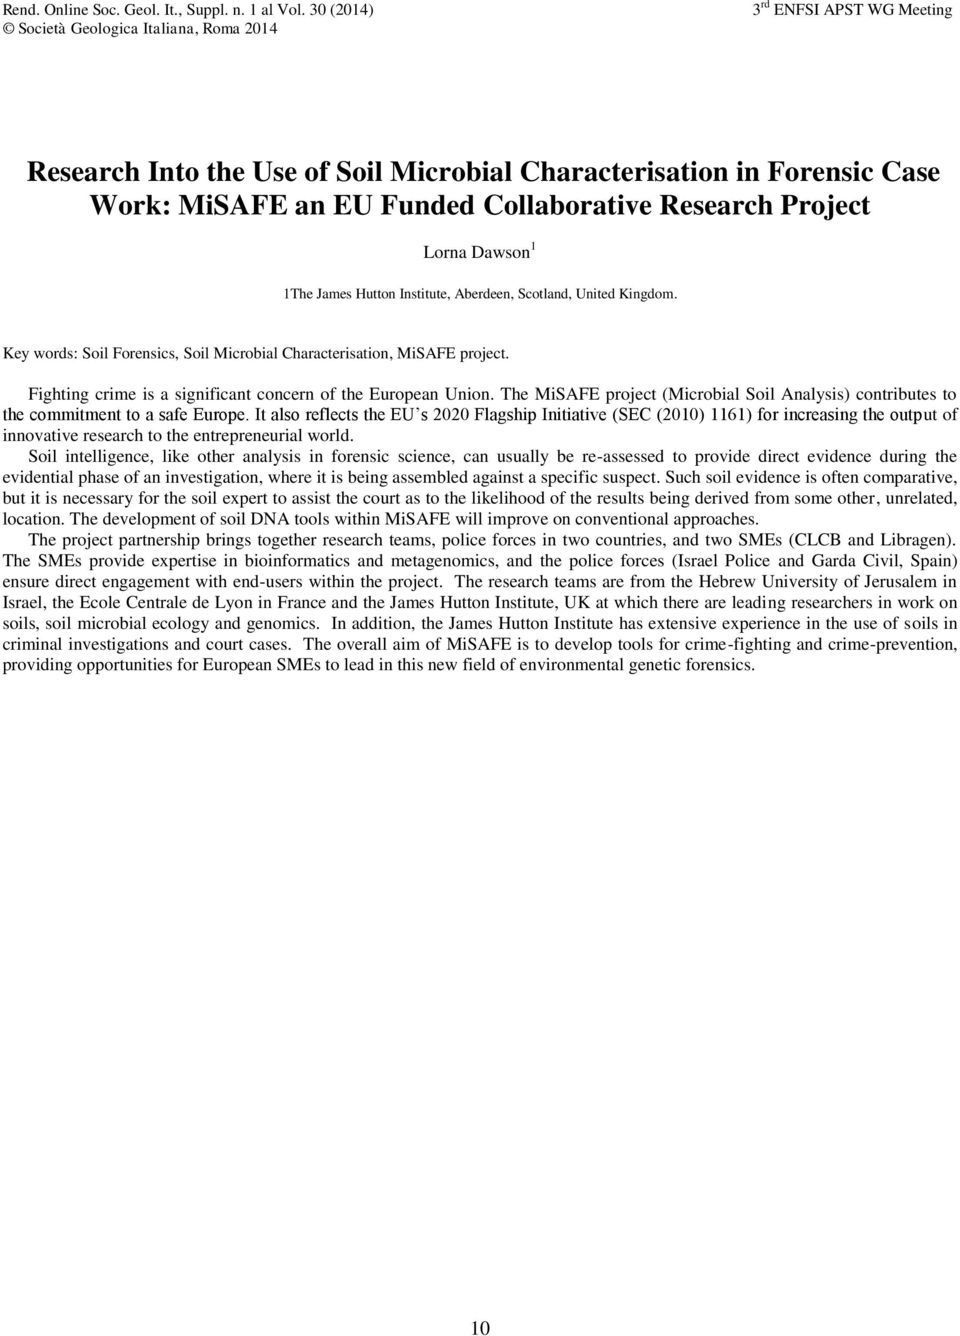 The MiSAFE project (Microbial Soil Analysis) contributes to the commitment to a safe Europe.